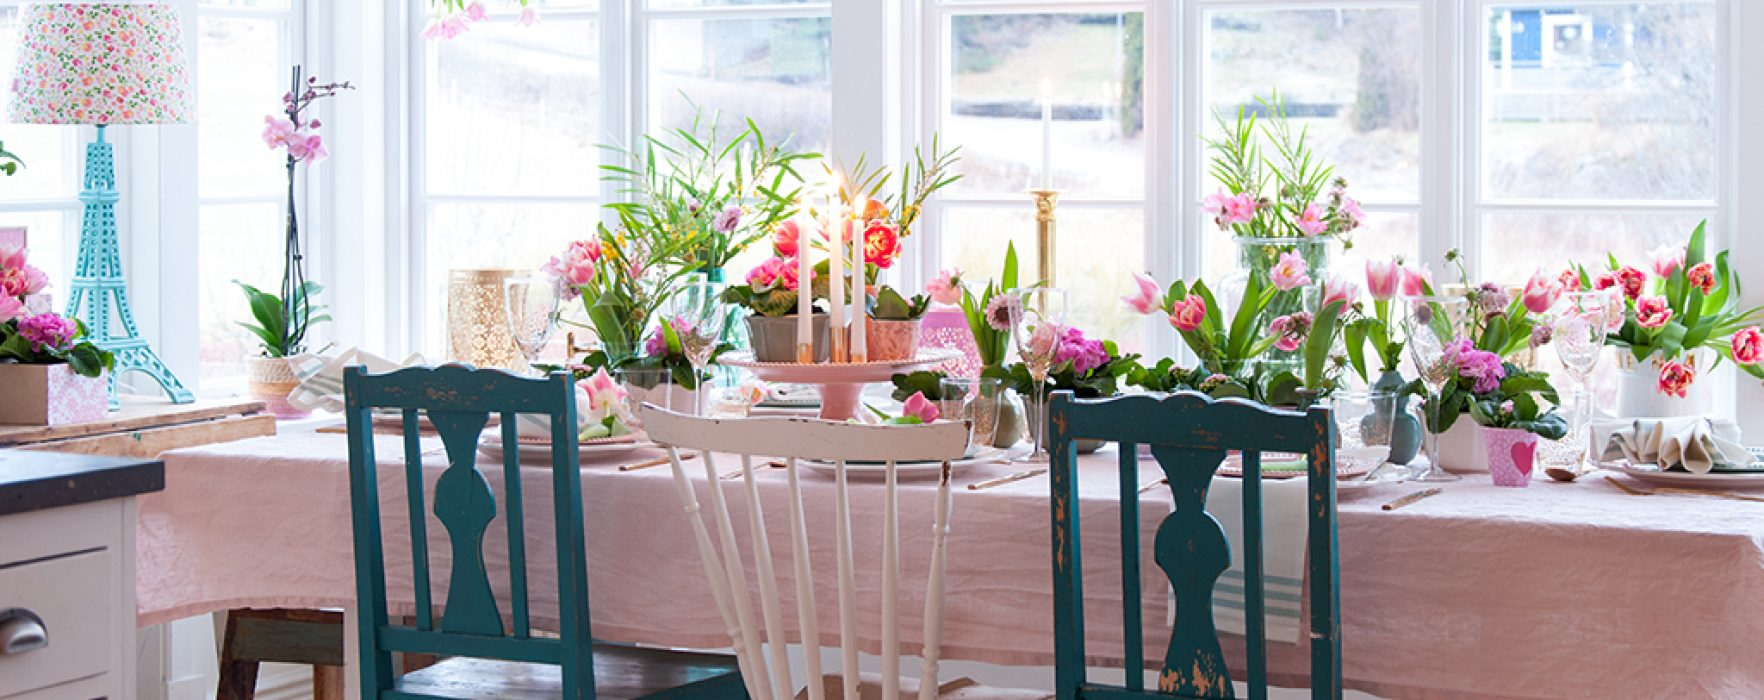 6 Ideas for a Sensational Easter Table Setting : easter table setting - Pezcame.Com